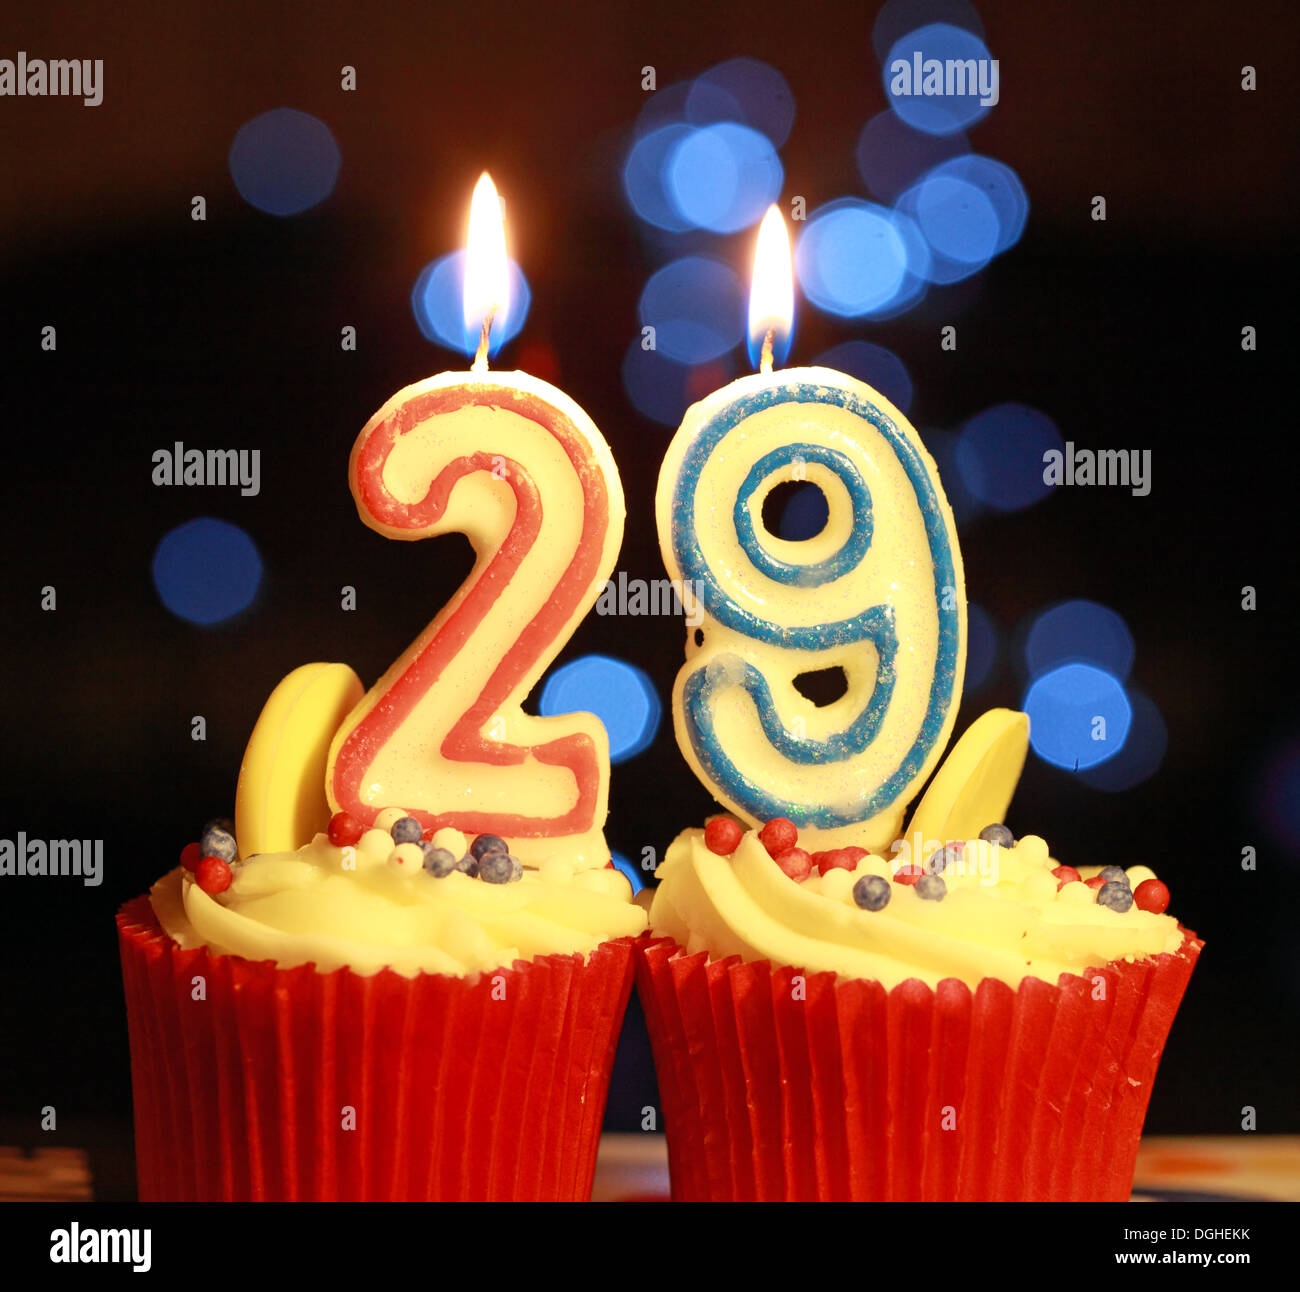 iced,muffin,cake,candles,burning,integer,birthdat,twenty,nine,nines,number,numbers,red,blue,bocker,bokeh,two,cakes,2,29,celebrate,celebration,celebrations,party,parties,29th,gotonysmith,Buy Pictures of,Buy Images Of